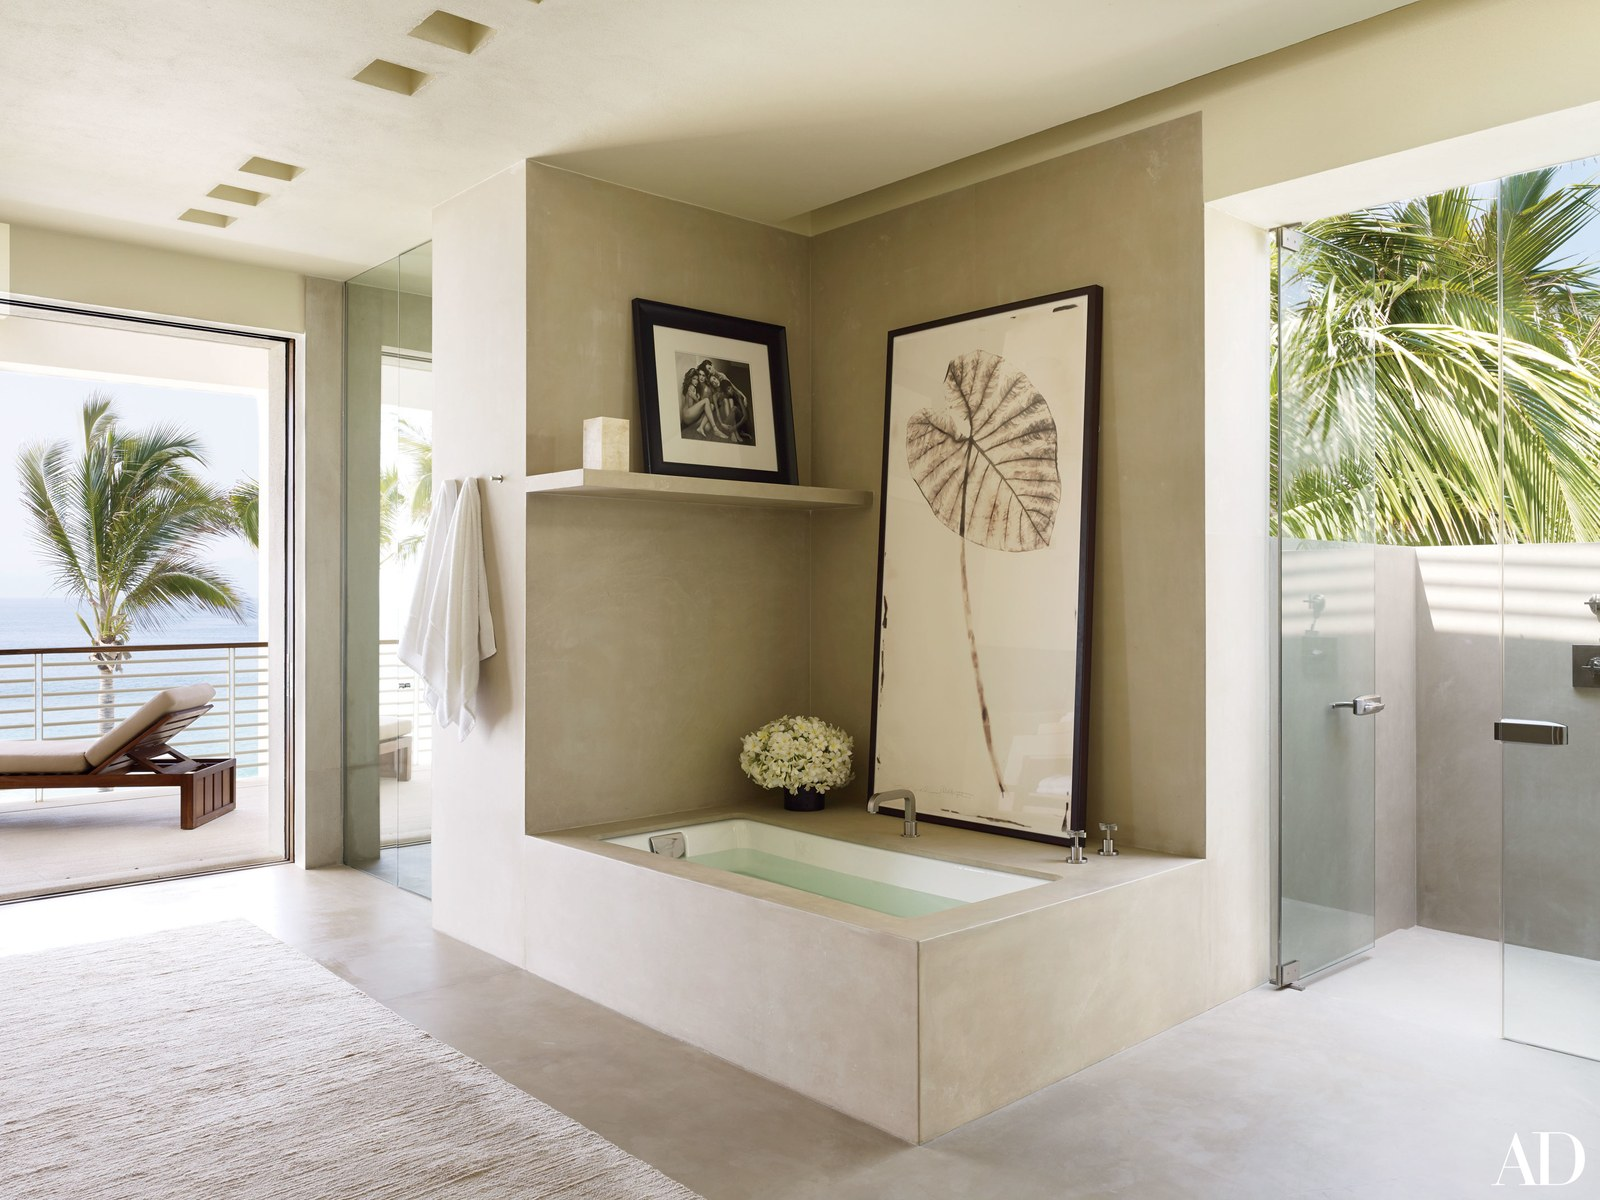 Celebrity Bathrooms You Need To See2 celebrity bathrooms 5 Celebrity Bathrooms You Need To See Celebrity Bathrooms You Need To See2